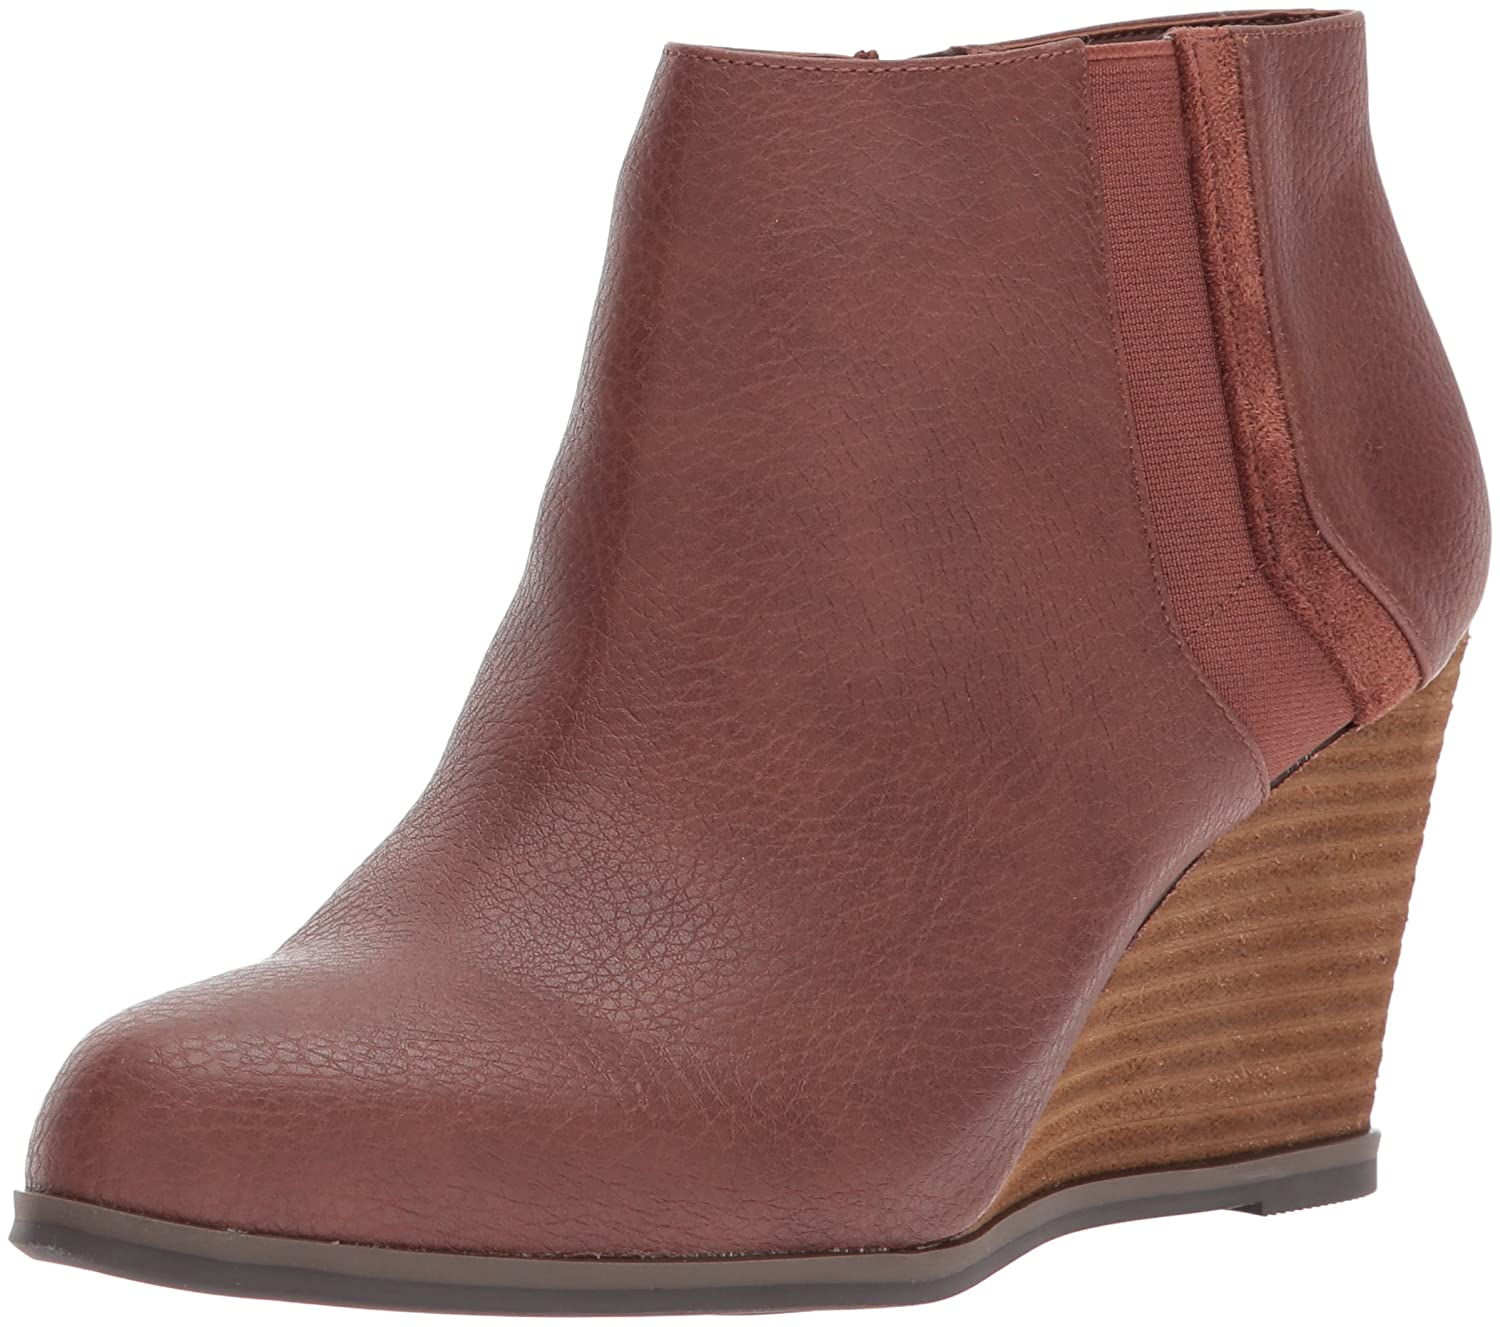 Dr. Scholl's Shoes Women's Patch Boot B071DJYS3T 9 B(M) US|Copper Brown Tumbled